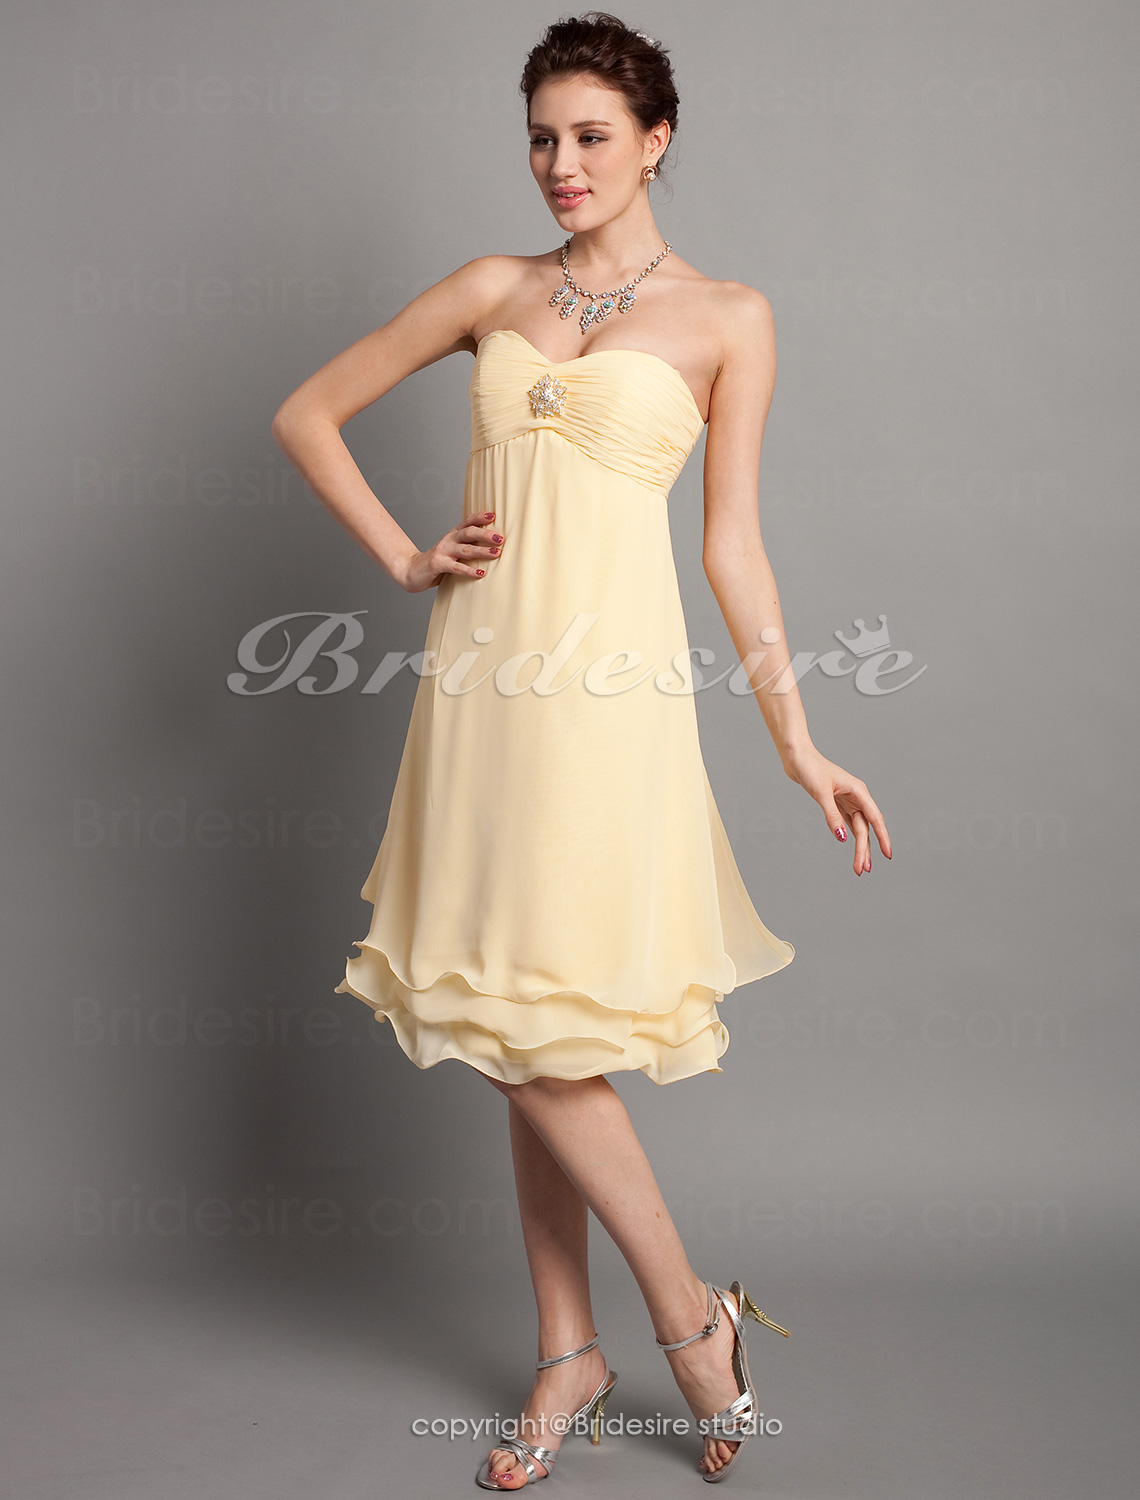 A-line Empire Chiffon Knee-length Strapless Bridesmaid Dress